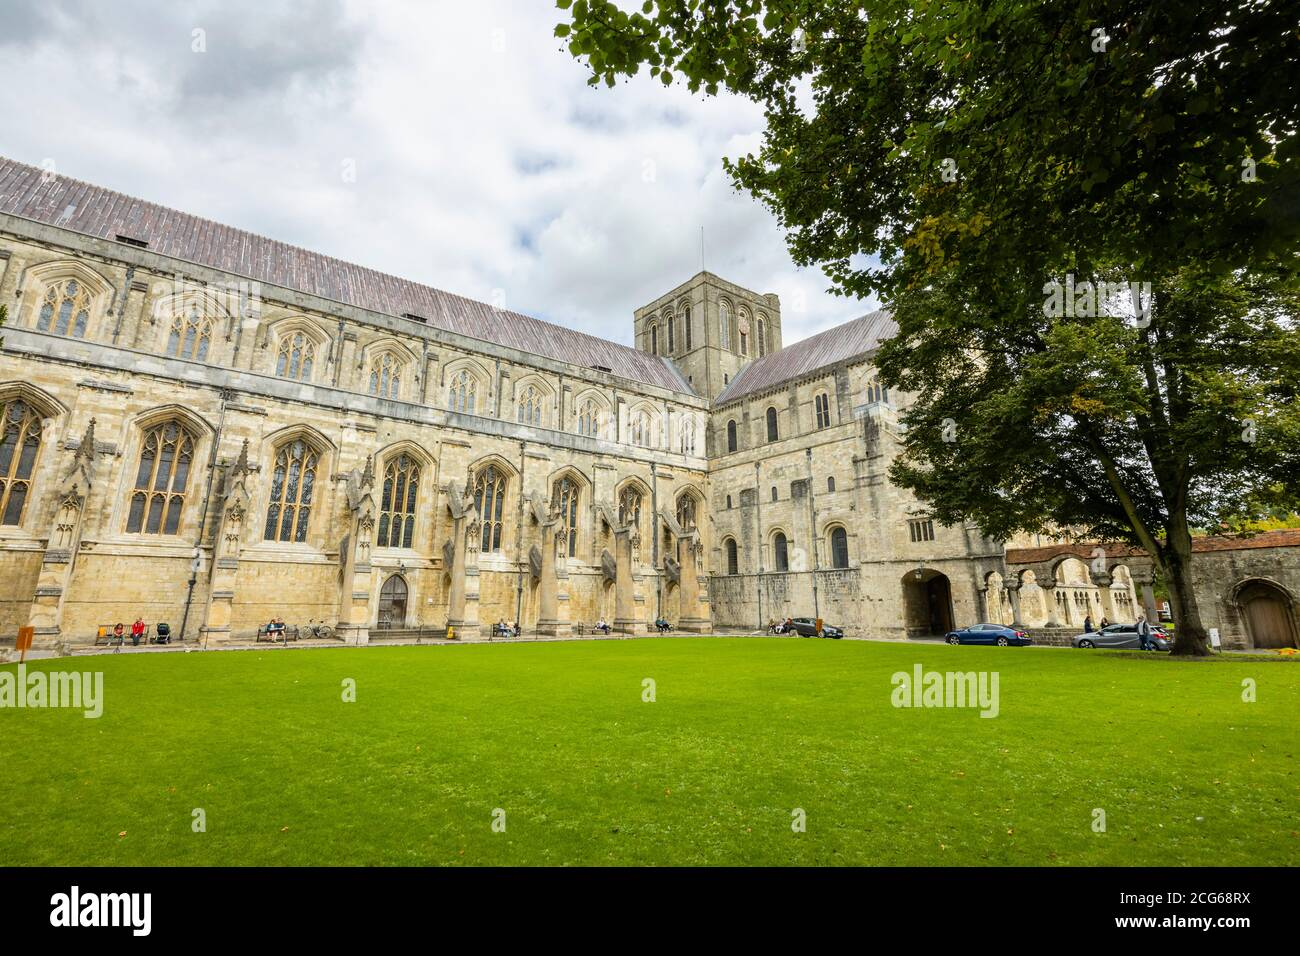 Flying buttresses and stonework on the south side of the exterior of Winchester Cathedral in Winchester, Hampshire, south England Stock Photo